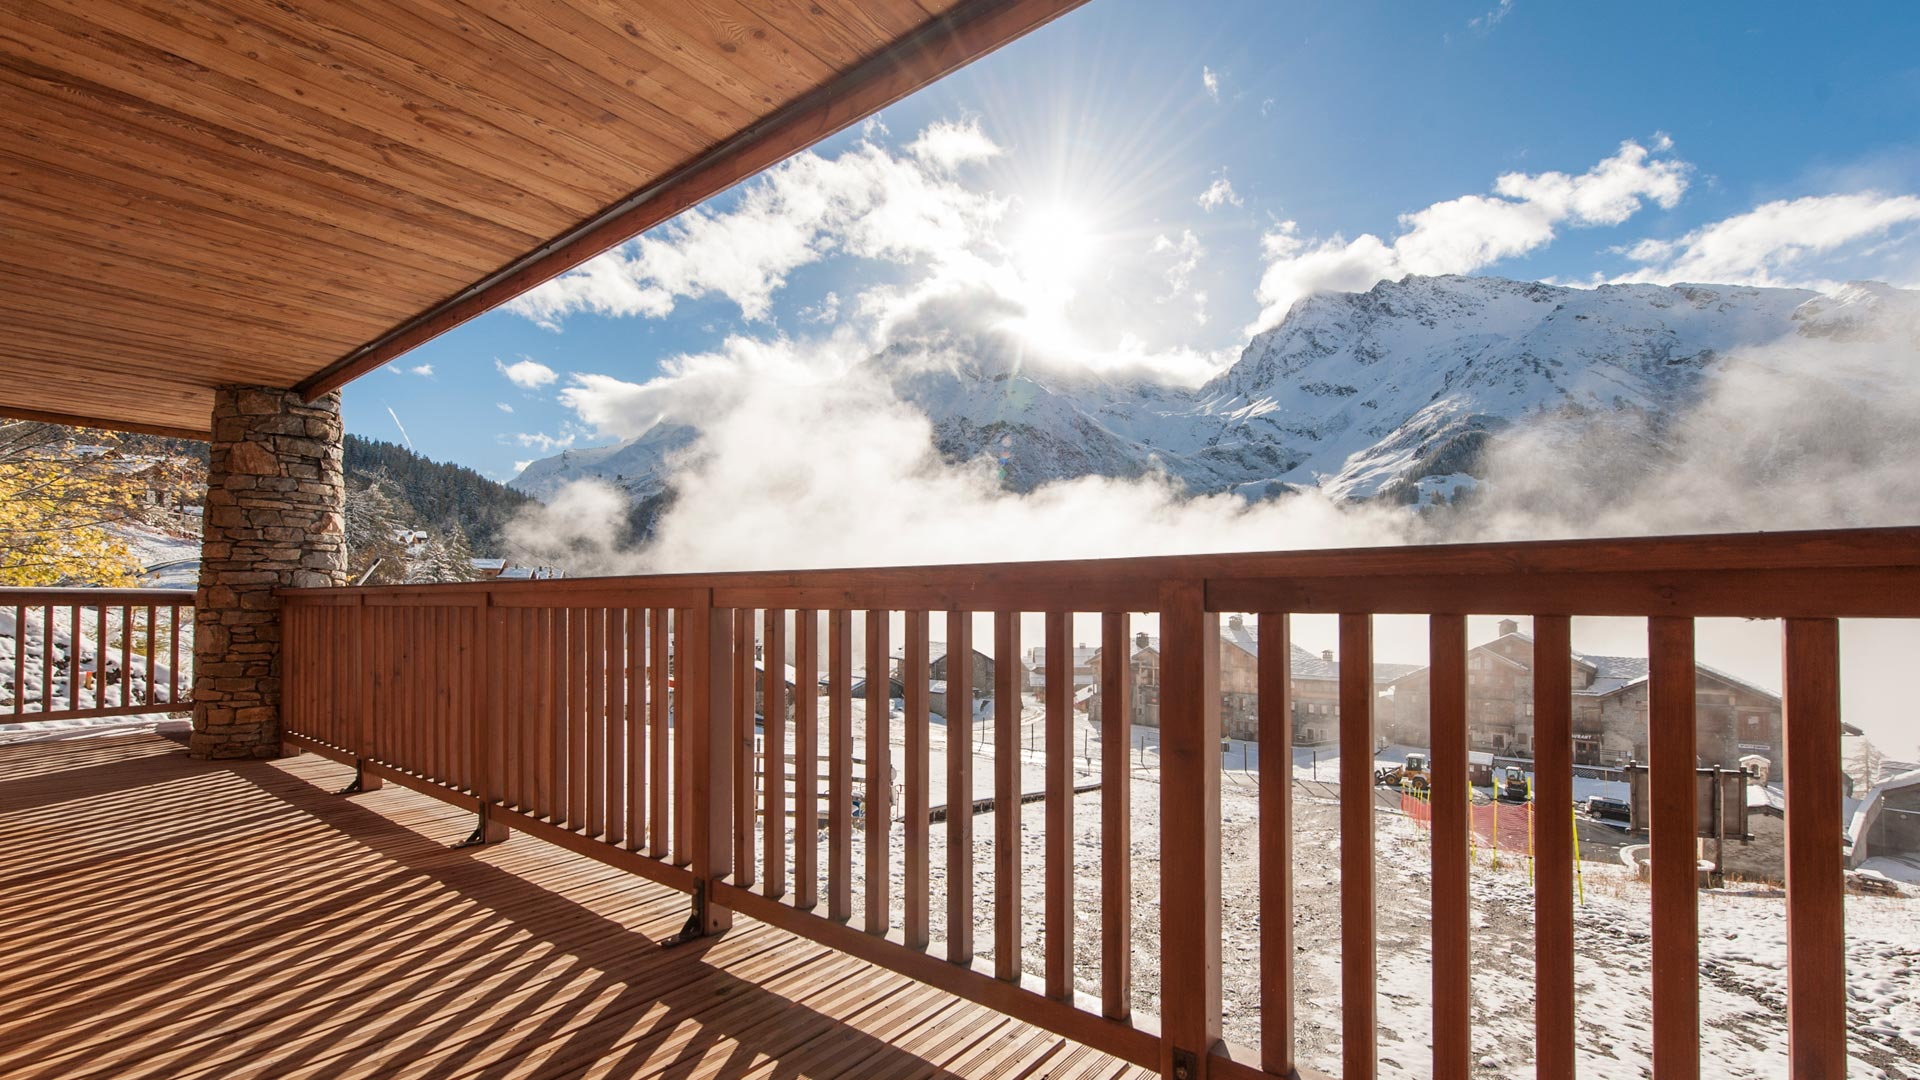 Bedroom 1 & 2 Balcony - Rayas Luxury Self catered chalet in Sainte Foy